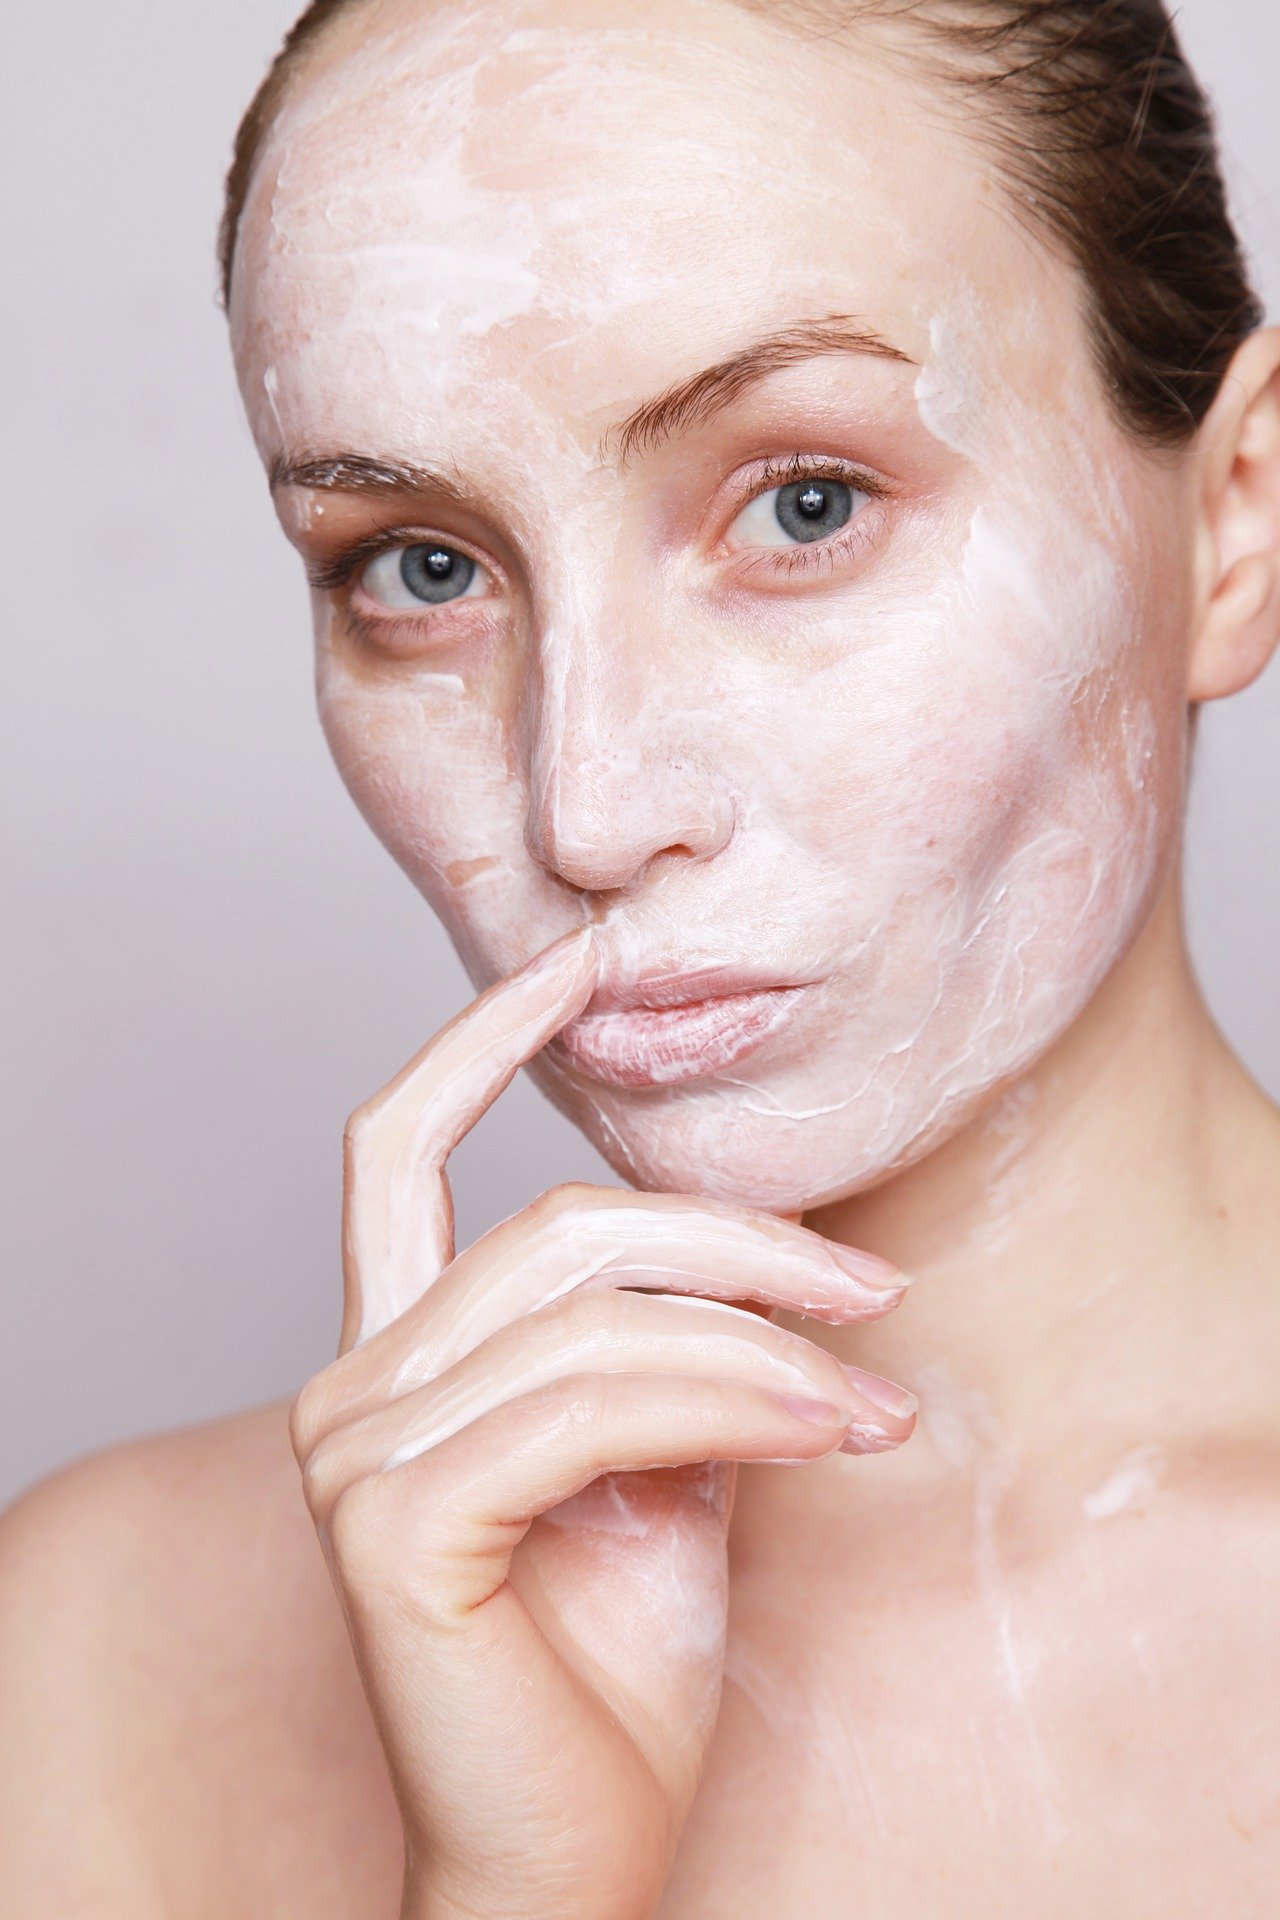 woman with white facial mask on